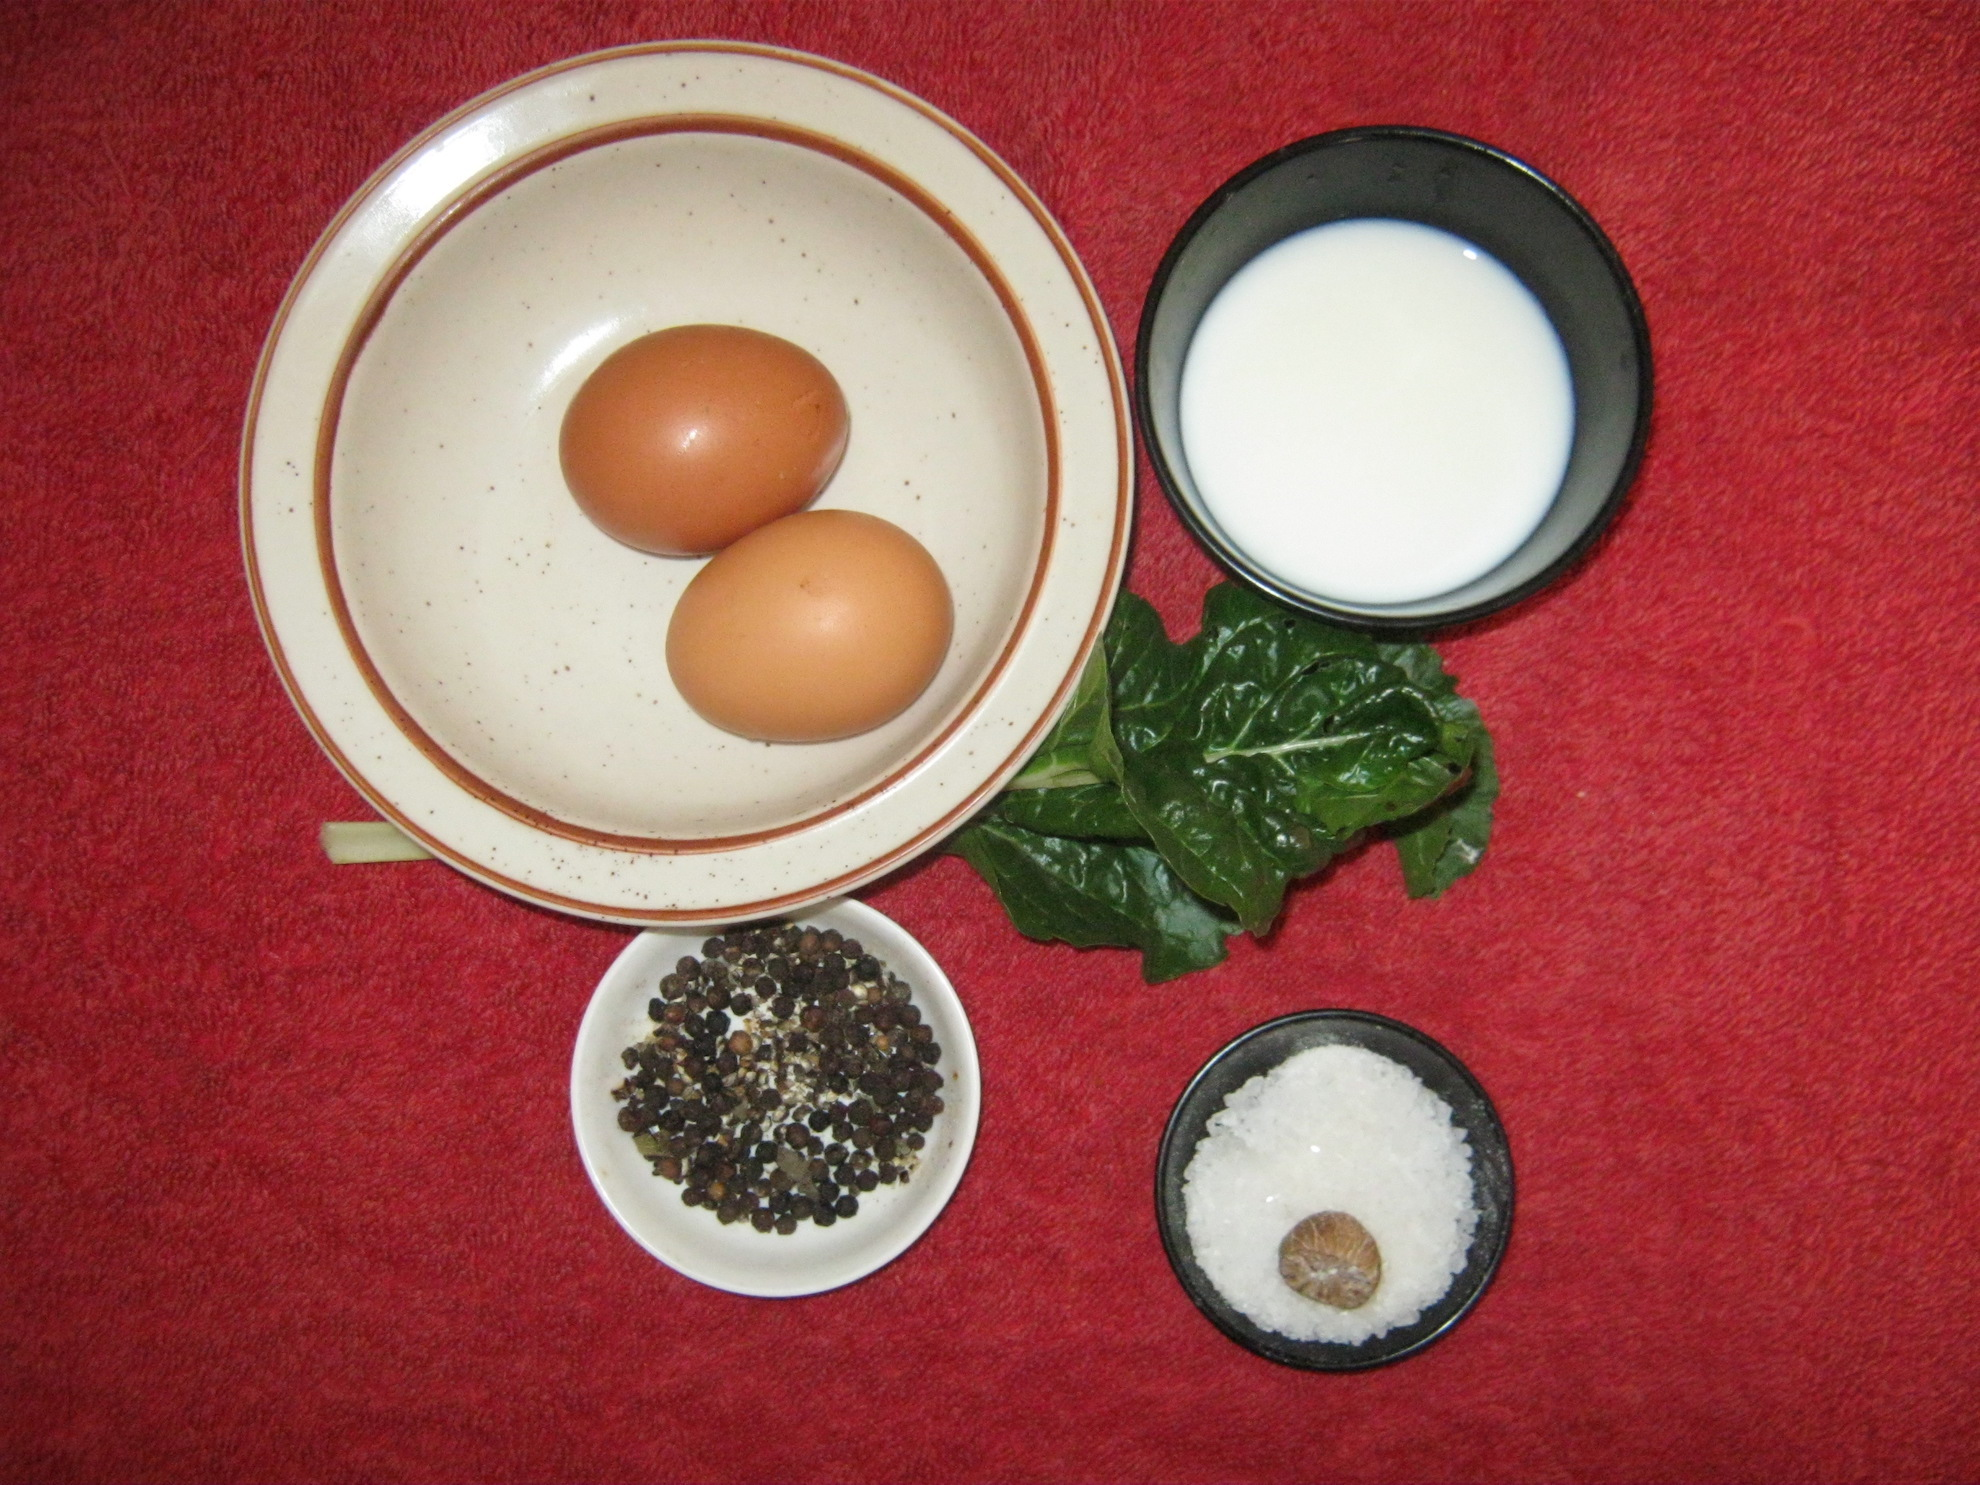 Ingredients for Green Eierstich (savory egg custard)